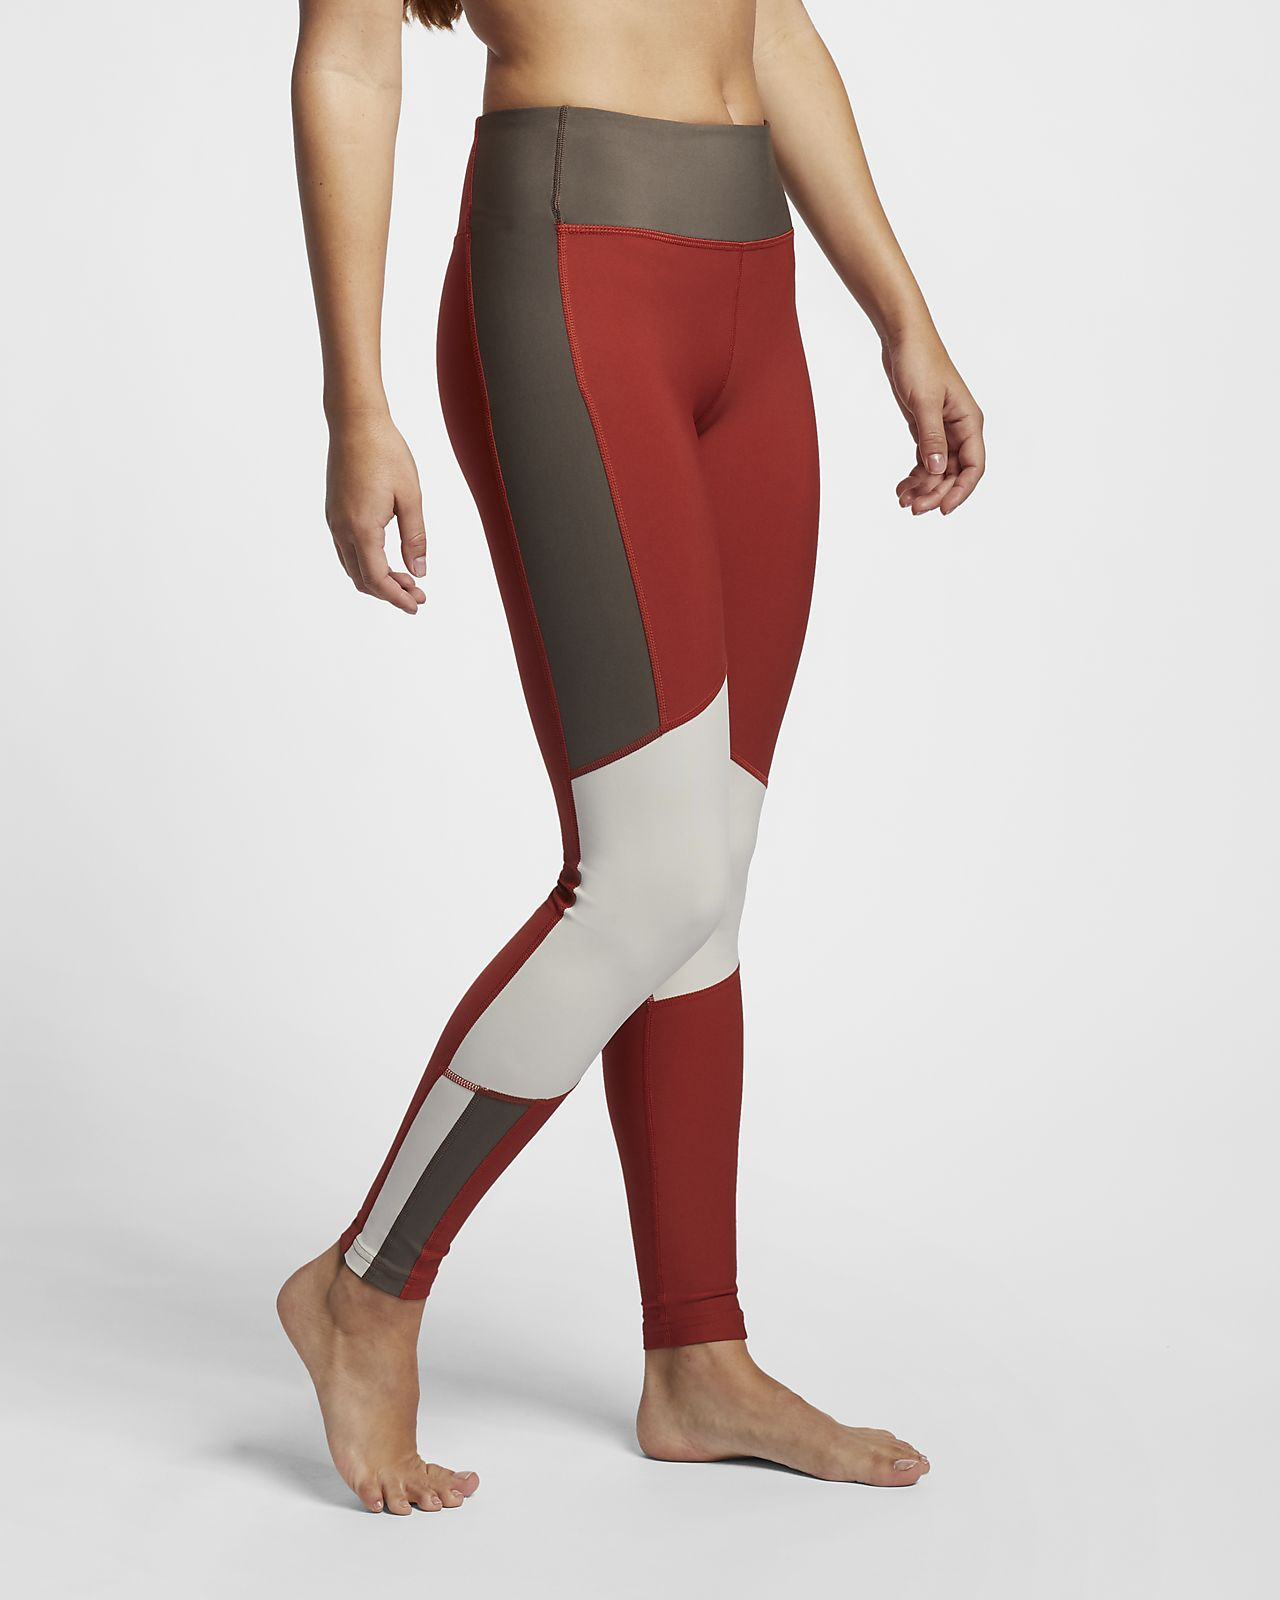 Hurley Quick Dry Street Ready surfeleggings til dame